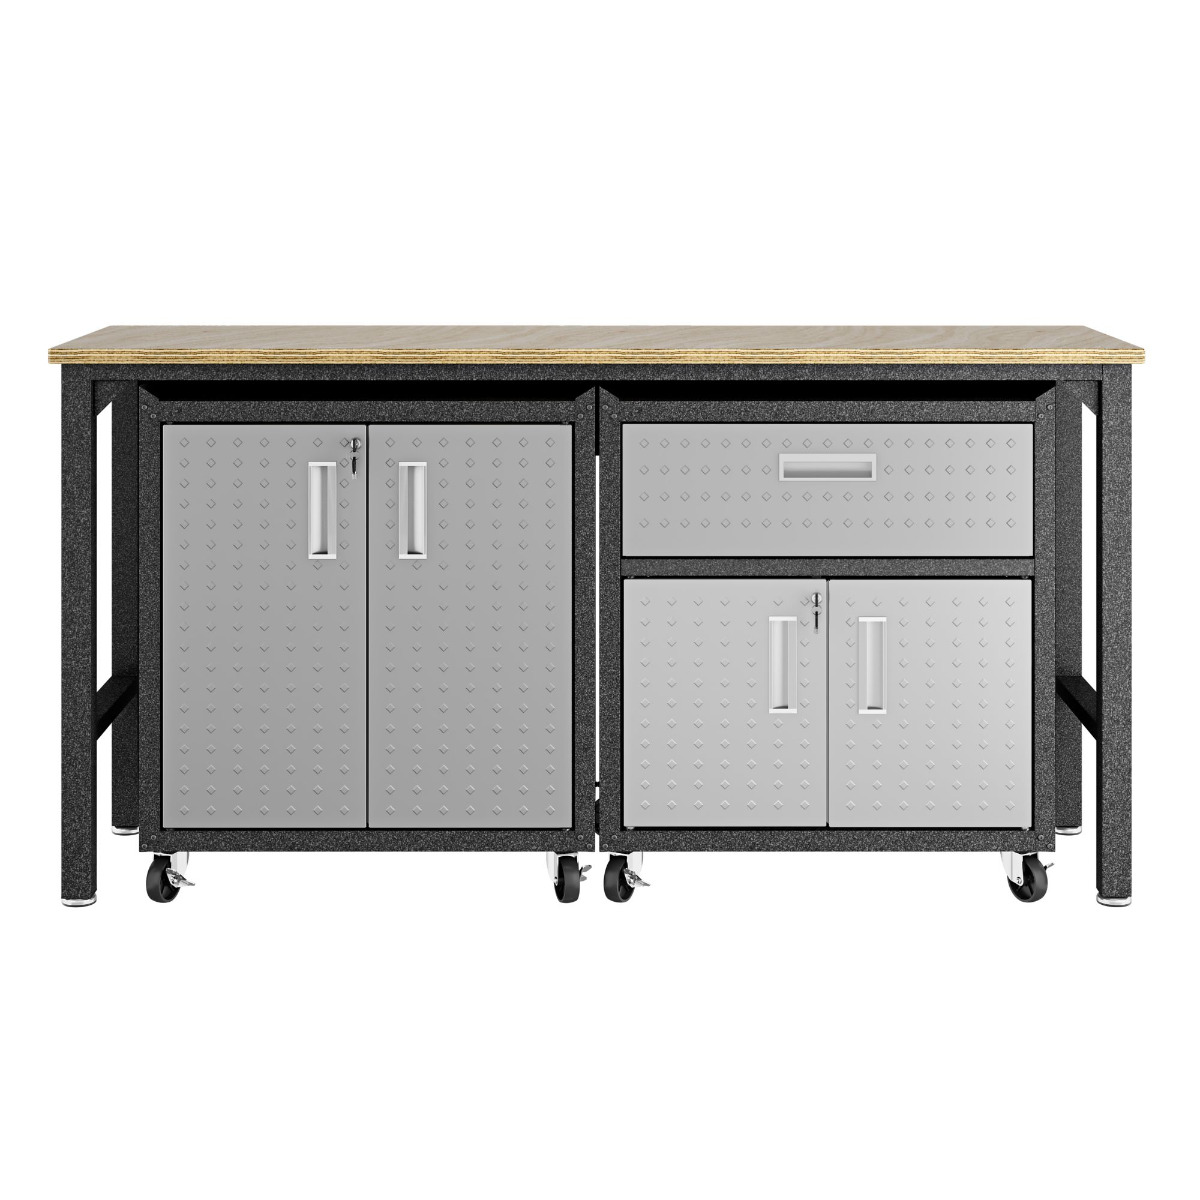 3-Piece Fortress Mobile Space-Saving Garage Cabinet and Worktable 2.0